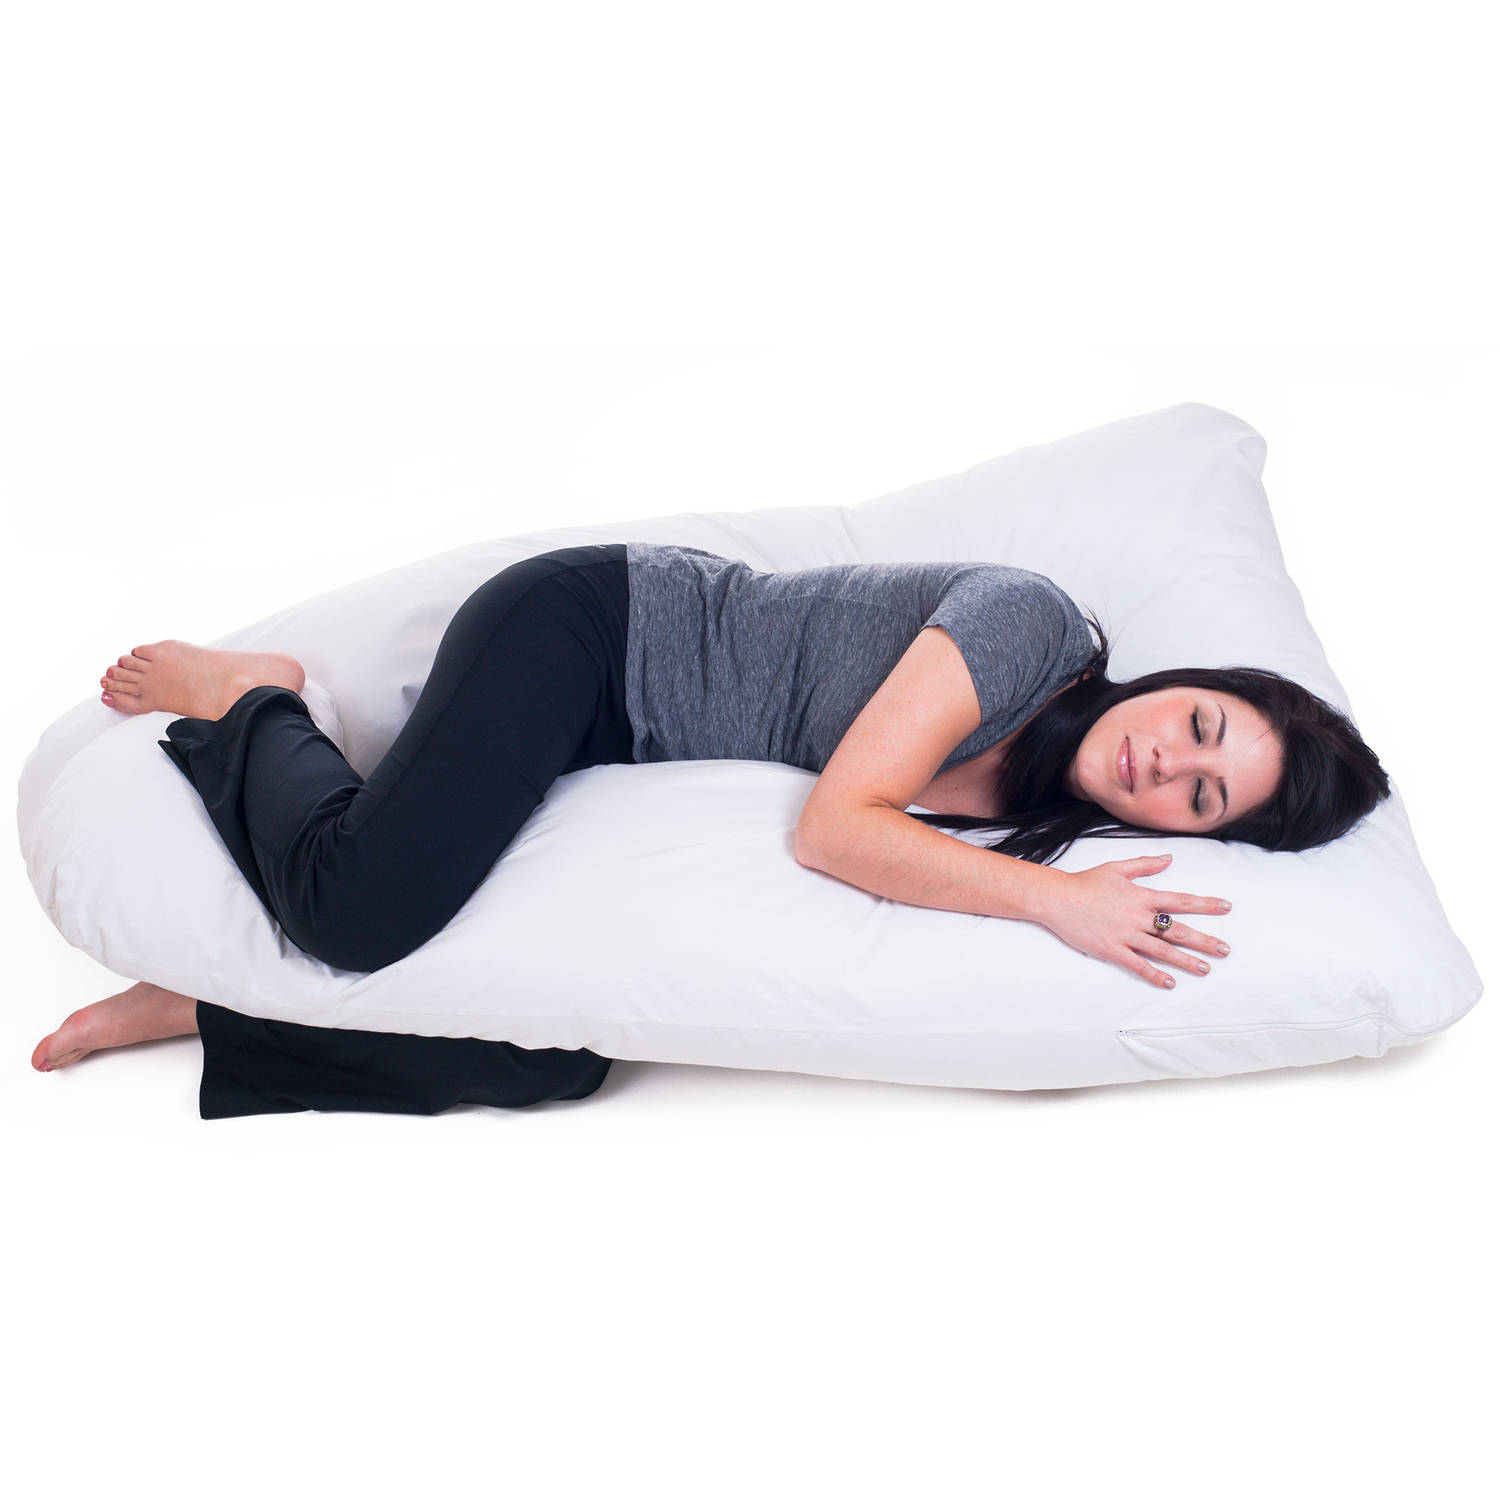 Pregnancy Pillow Full Body Maternity Pillow With Contoured U Shape